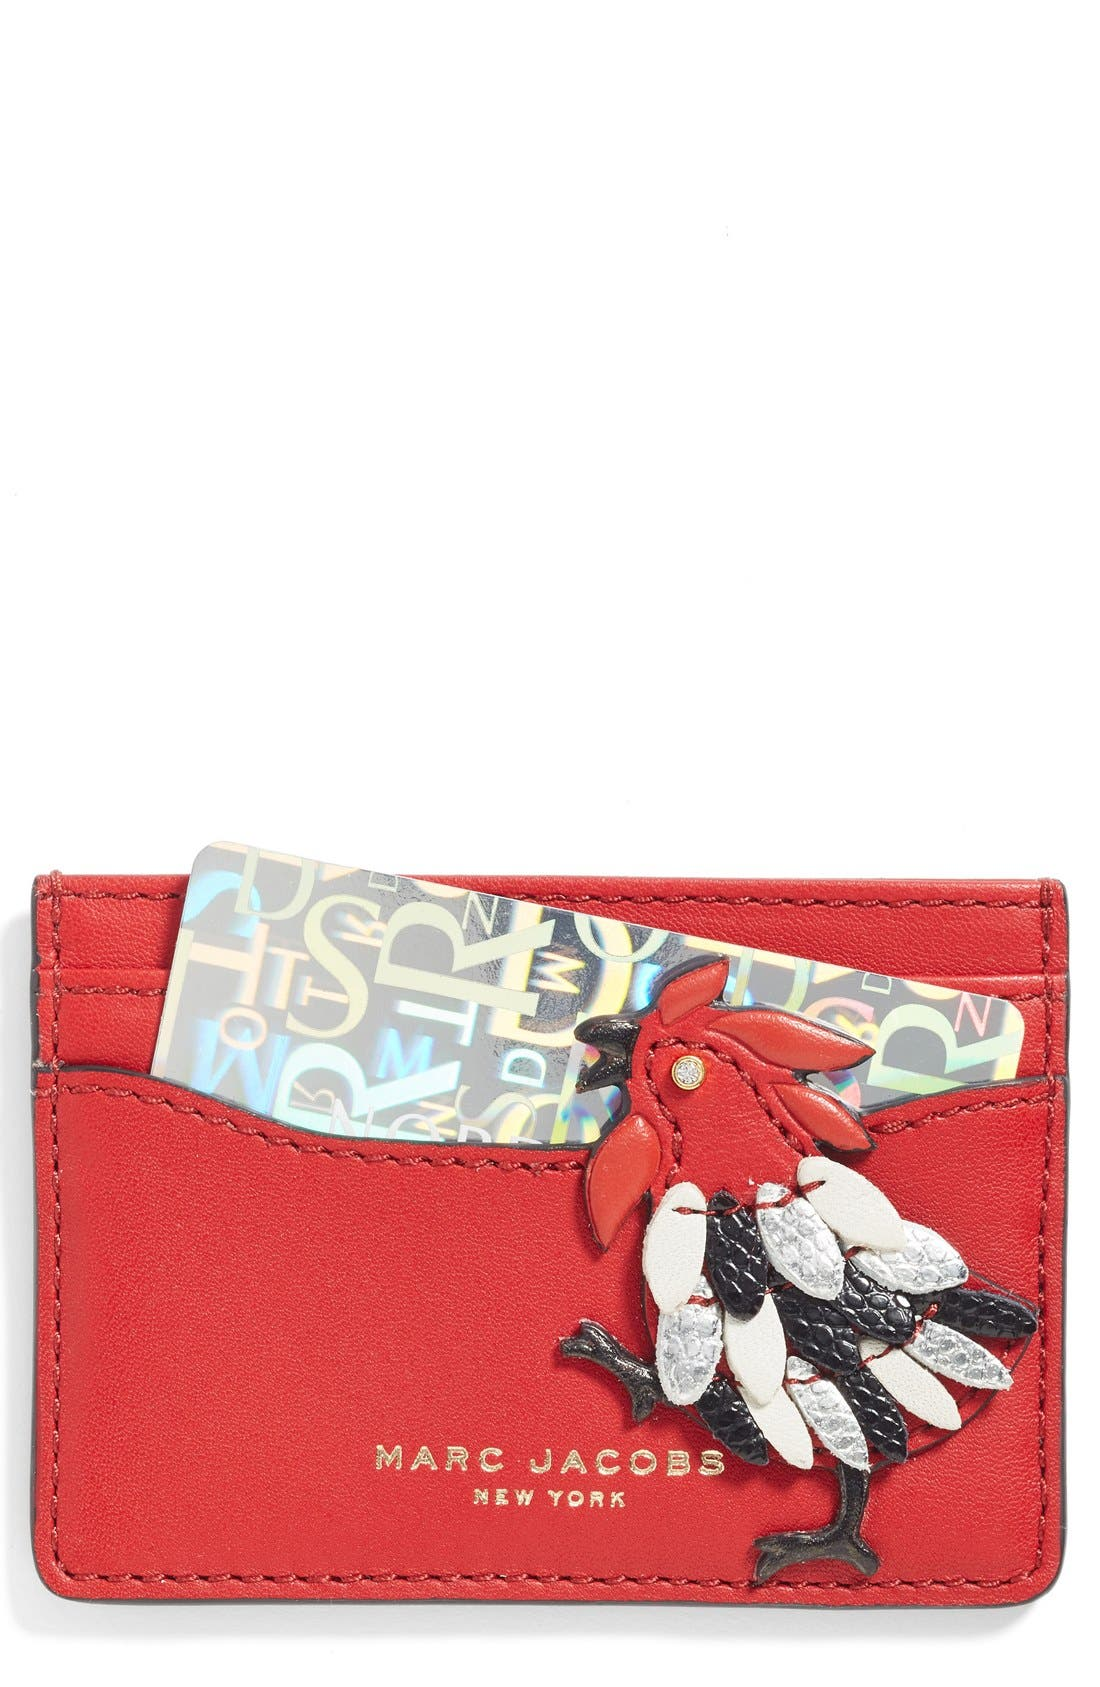 Rooster Leather Card Case, Main, color, 647